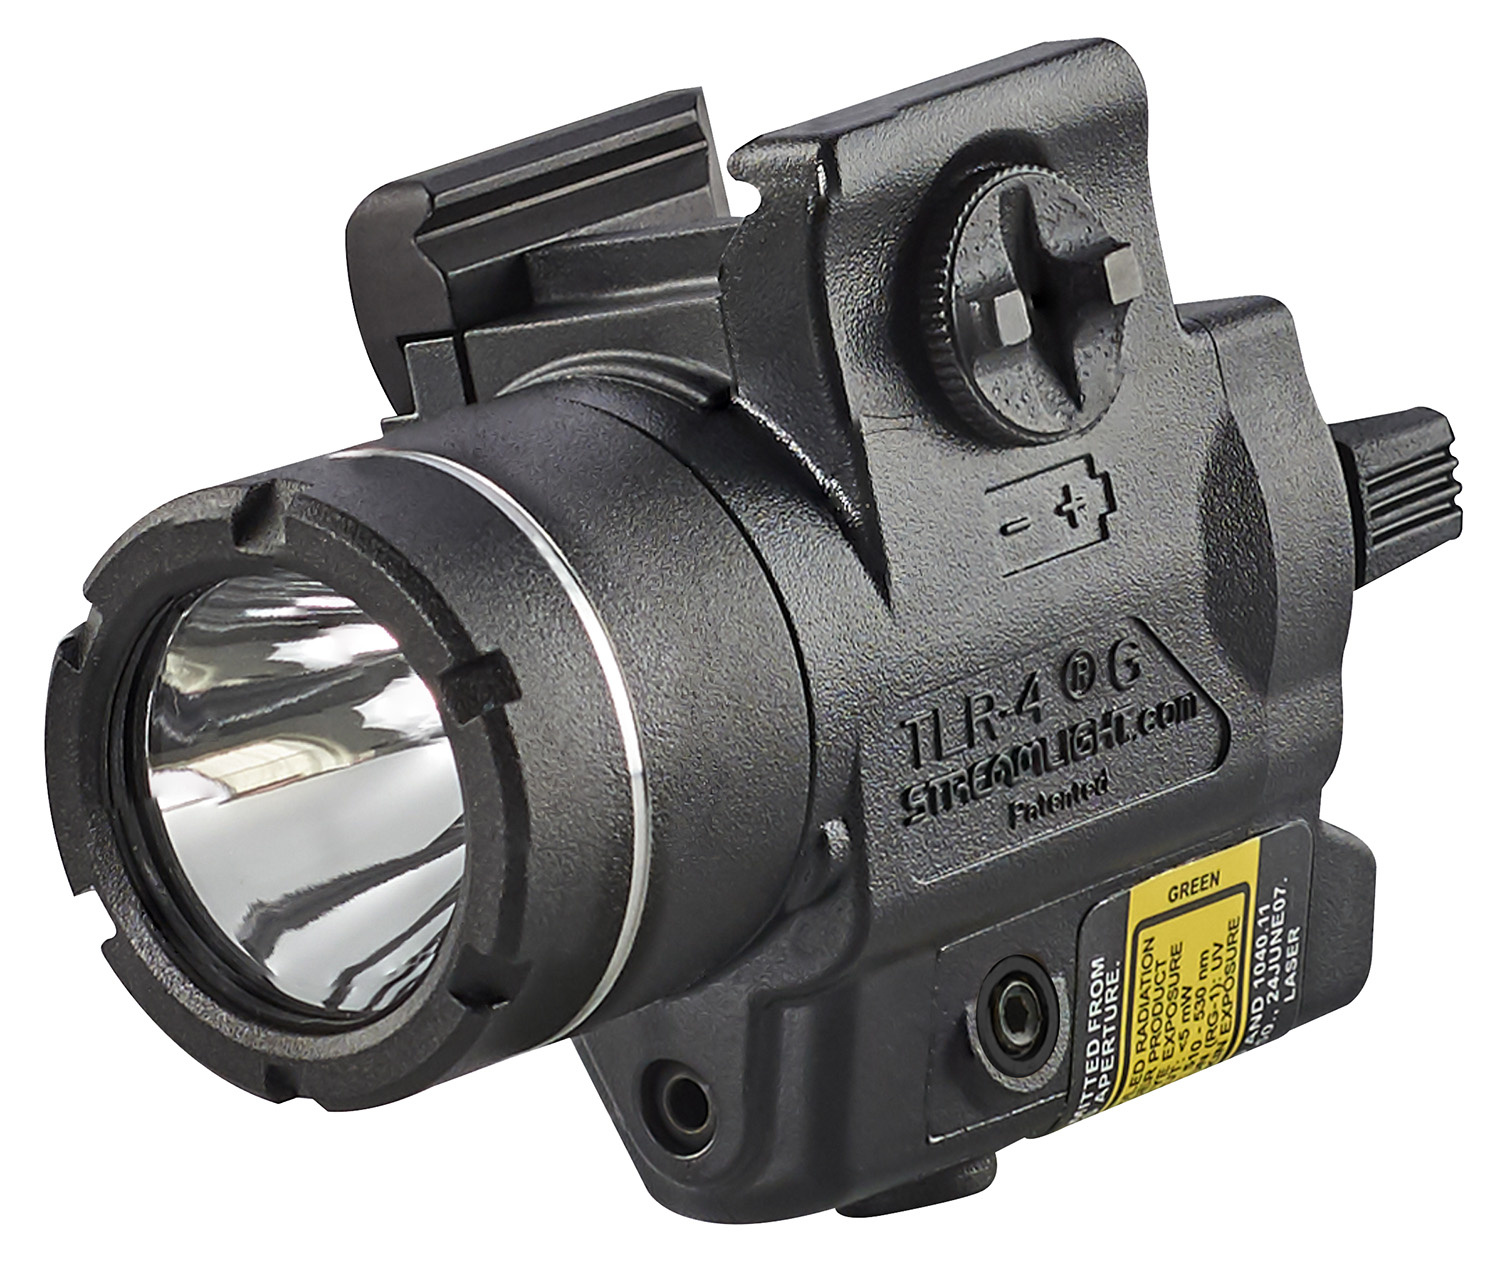 STL 69245  TLR4 TAC LIGHT W/GREEN LASR